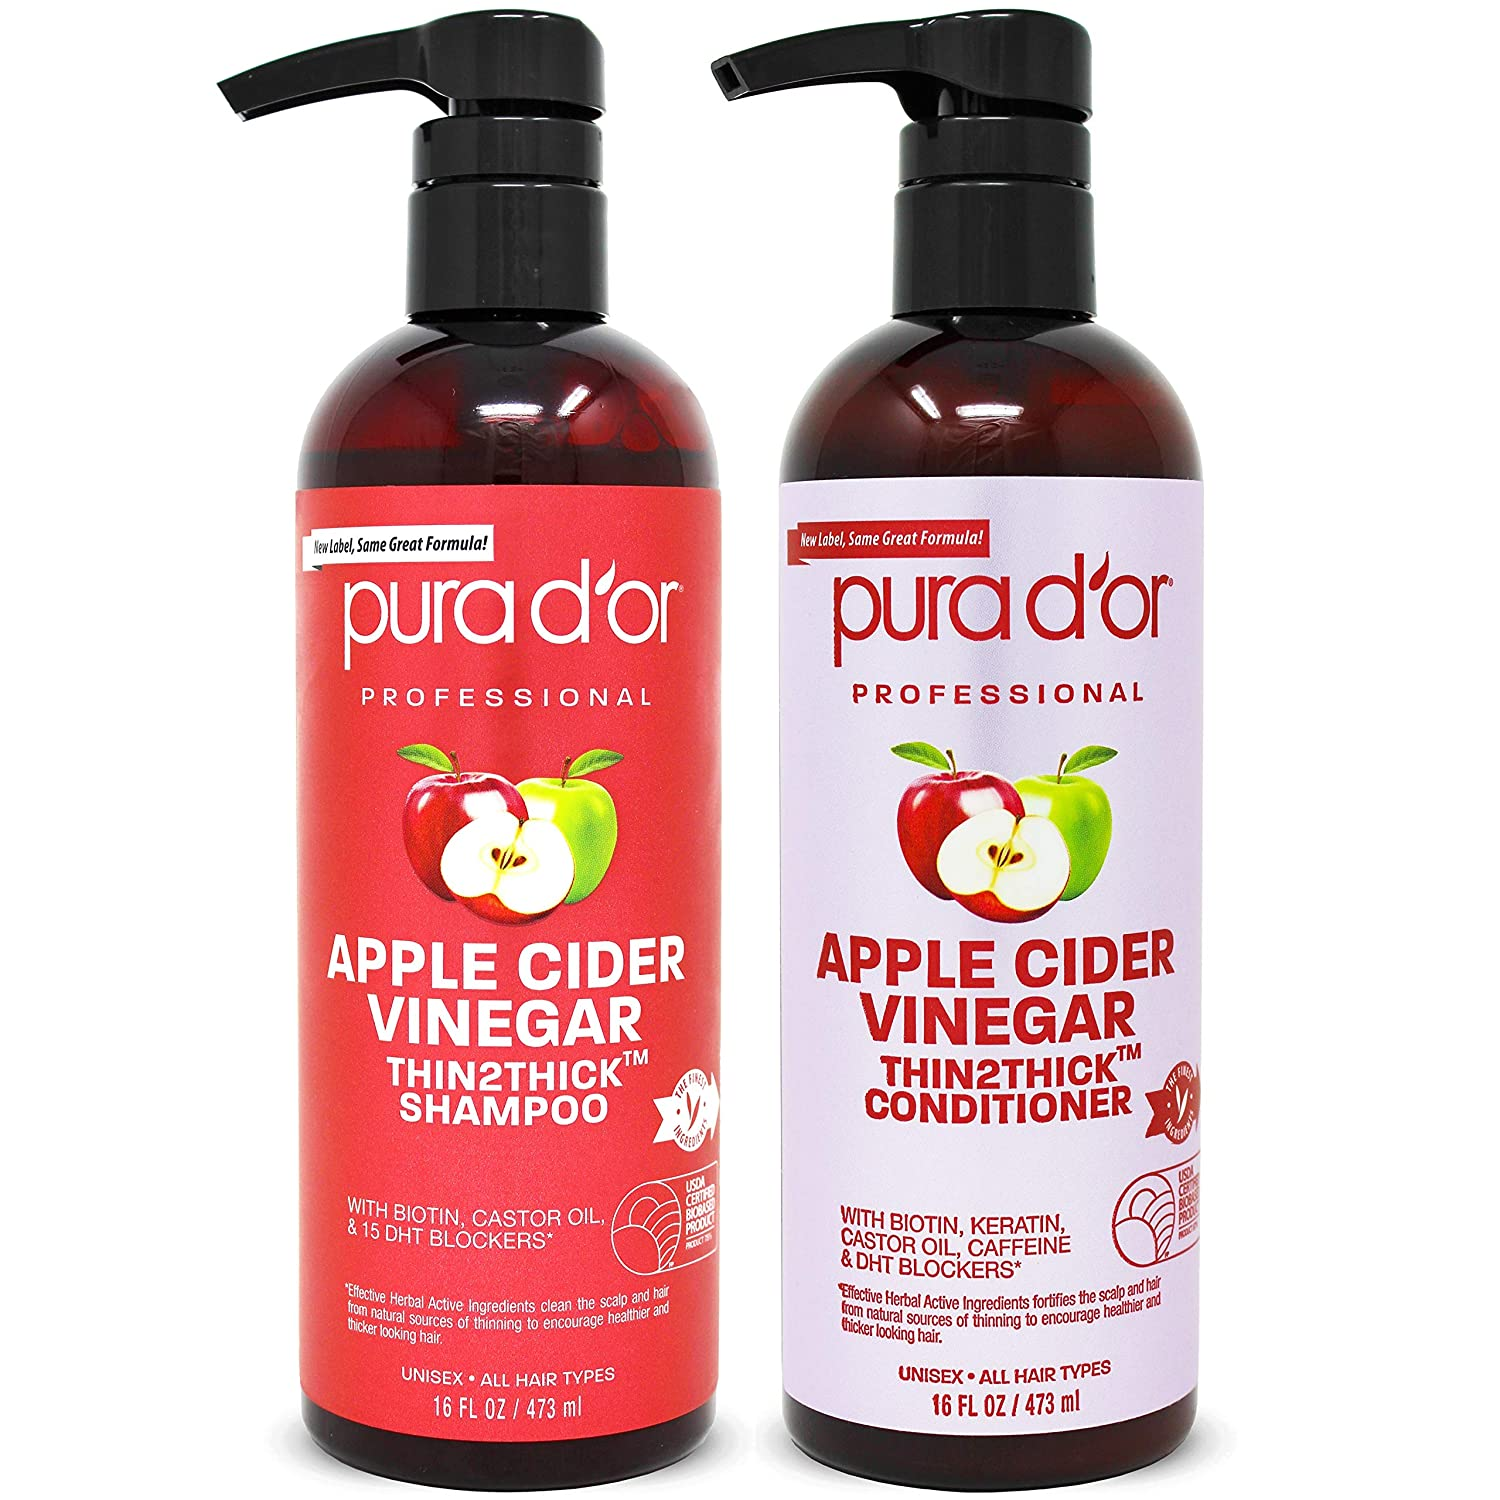 PURA D'OR Apple Cider Vinegar Thin2Thick Set Shampoo Conditioner for Regrowth, Hair Loss, Clarifying, Detox (2 x 16oz) Biotin, Keratin, Caffeine, Castor Oil, All Hair Type, Men/Women, Packaging varies: Beauty